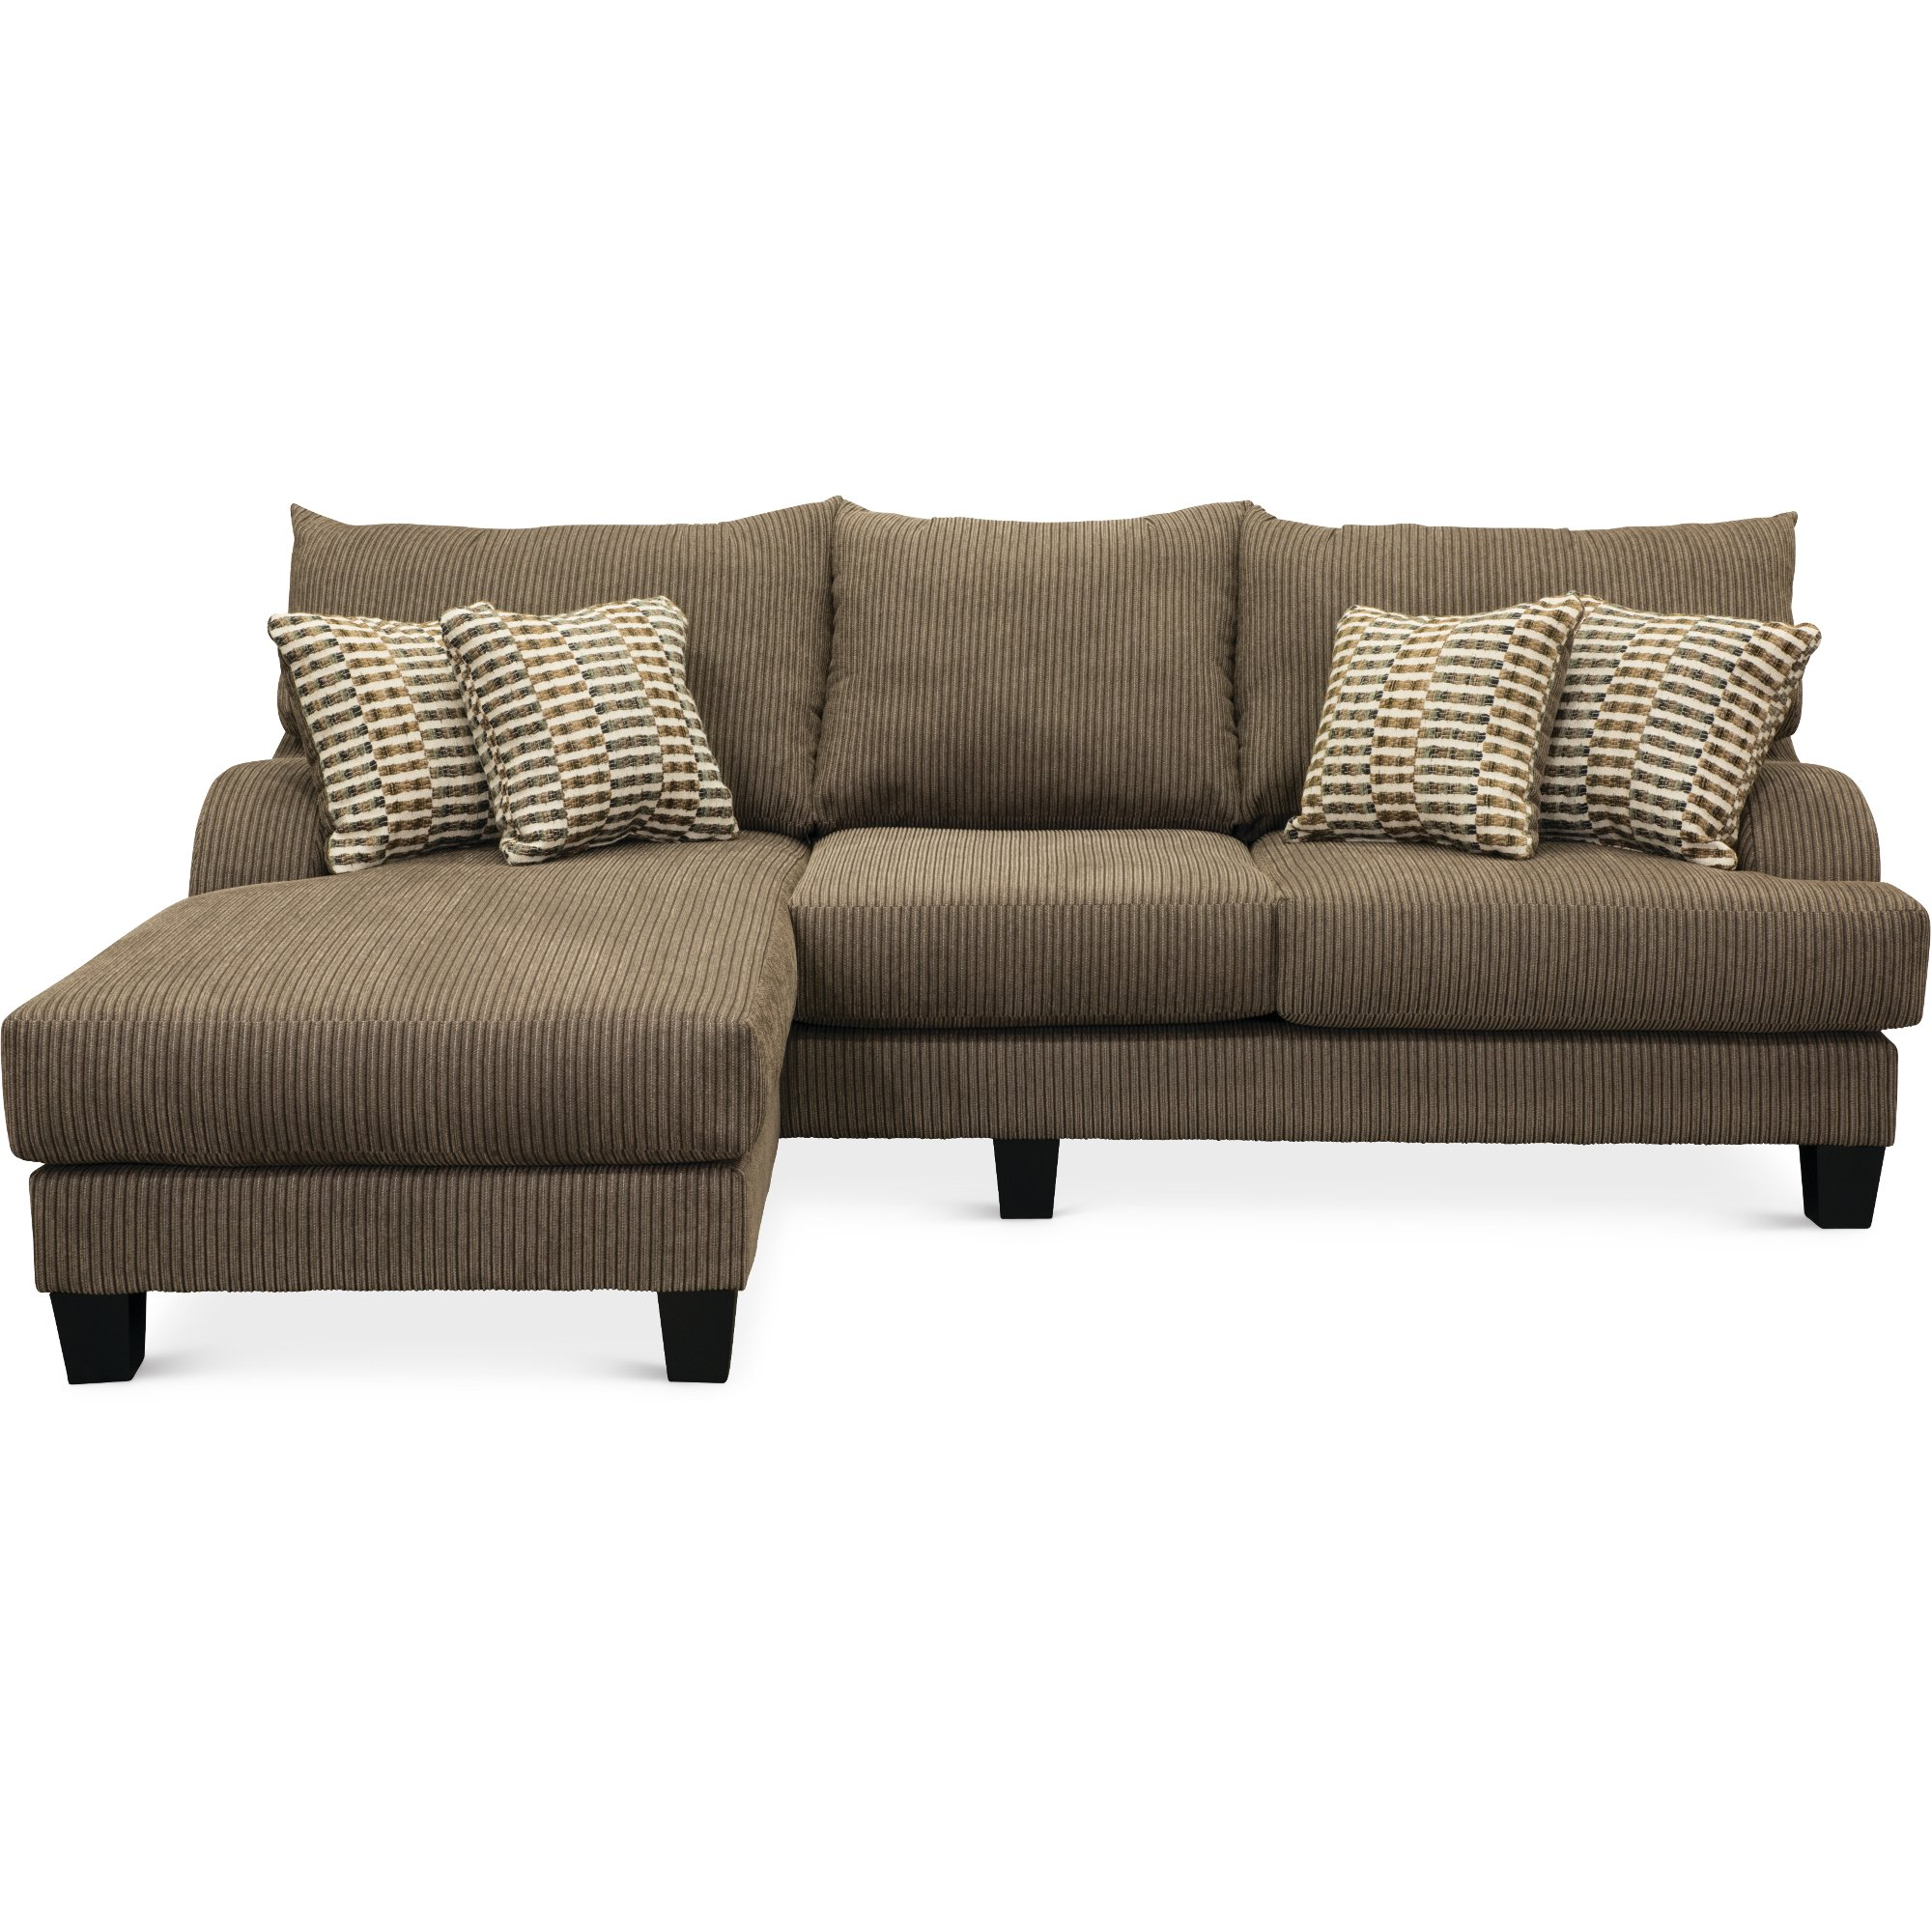 couch king contemporary gray furniture collections with chaise fabric efo sofas outlet brody lss sofa item jb in